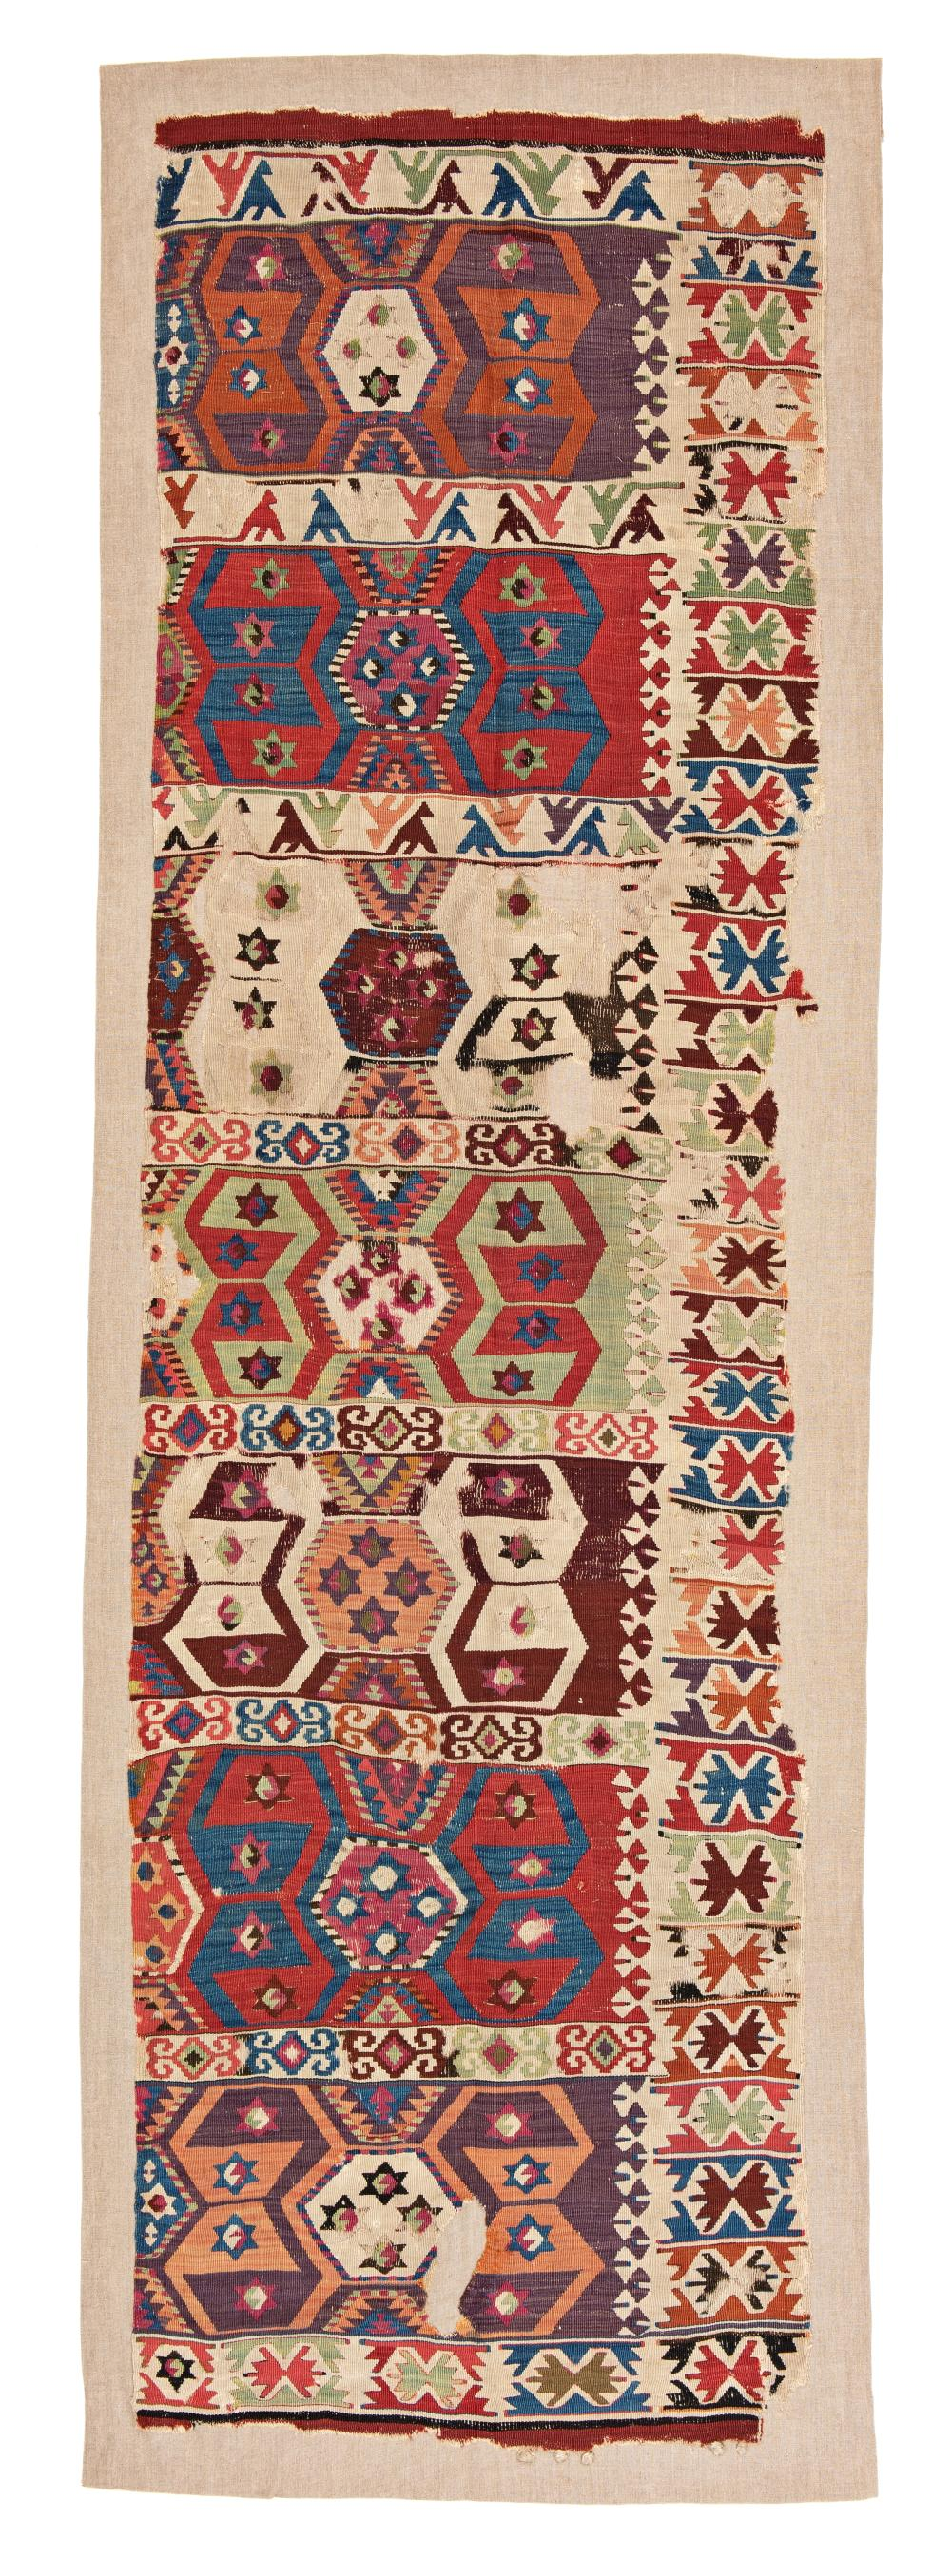 Central Anatolian Kilim Fragment